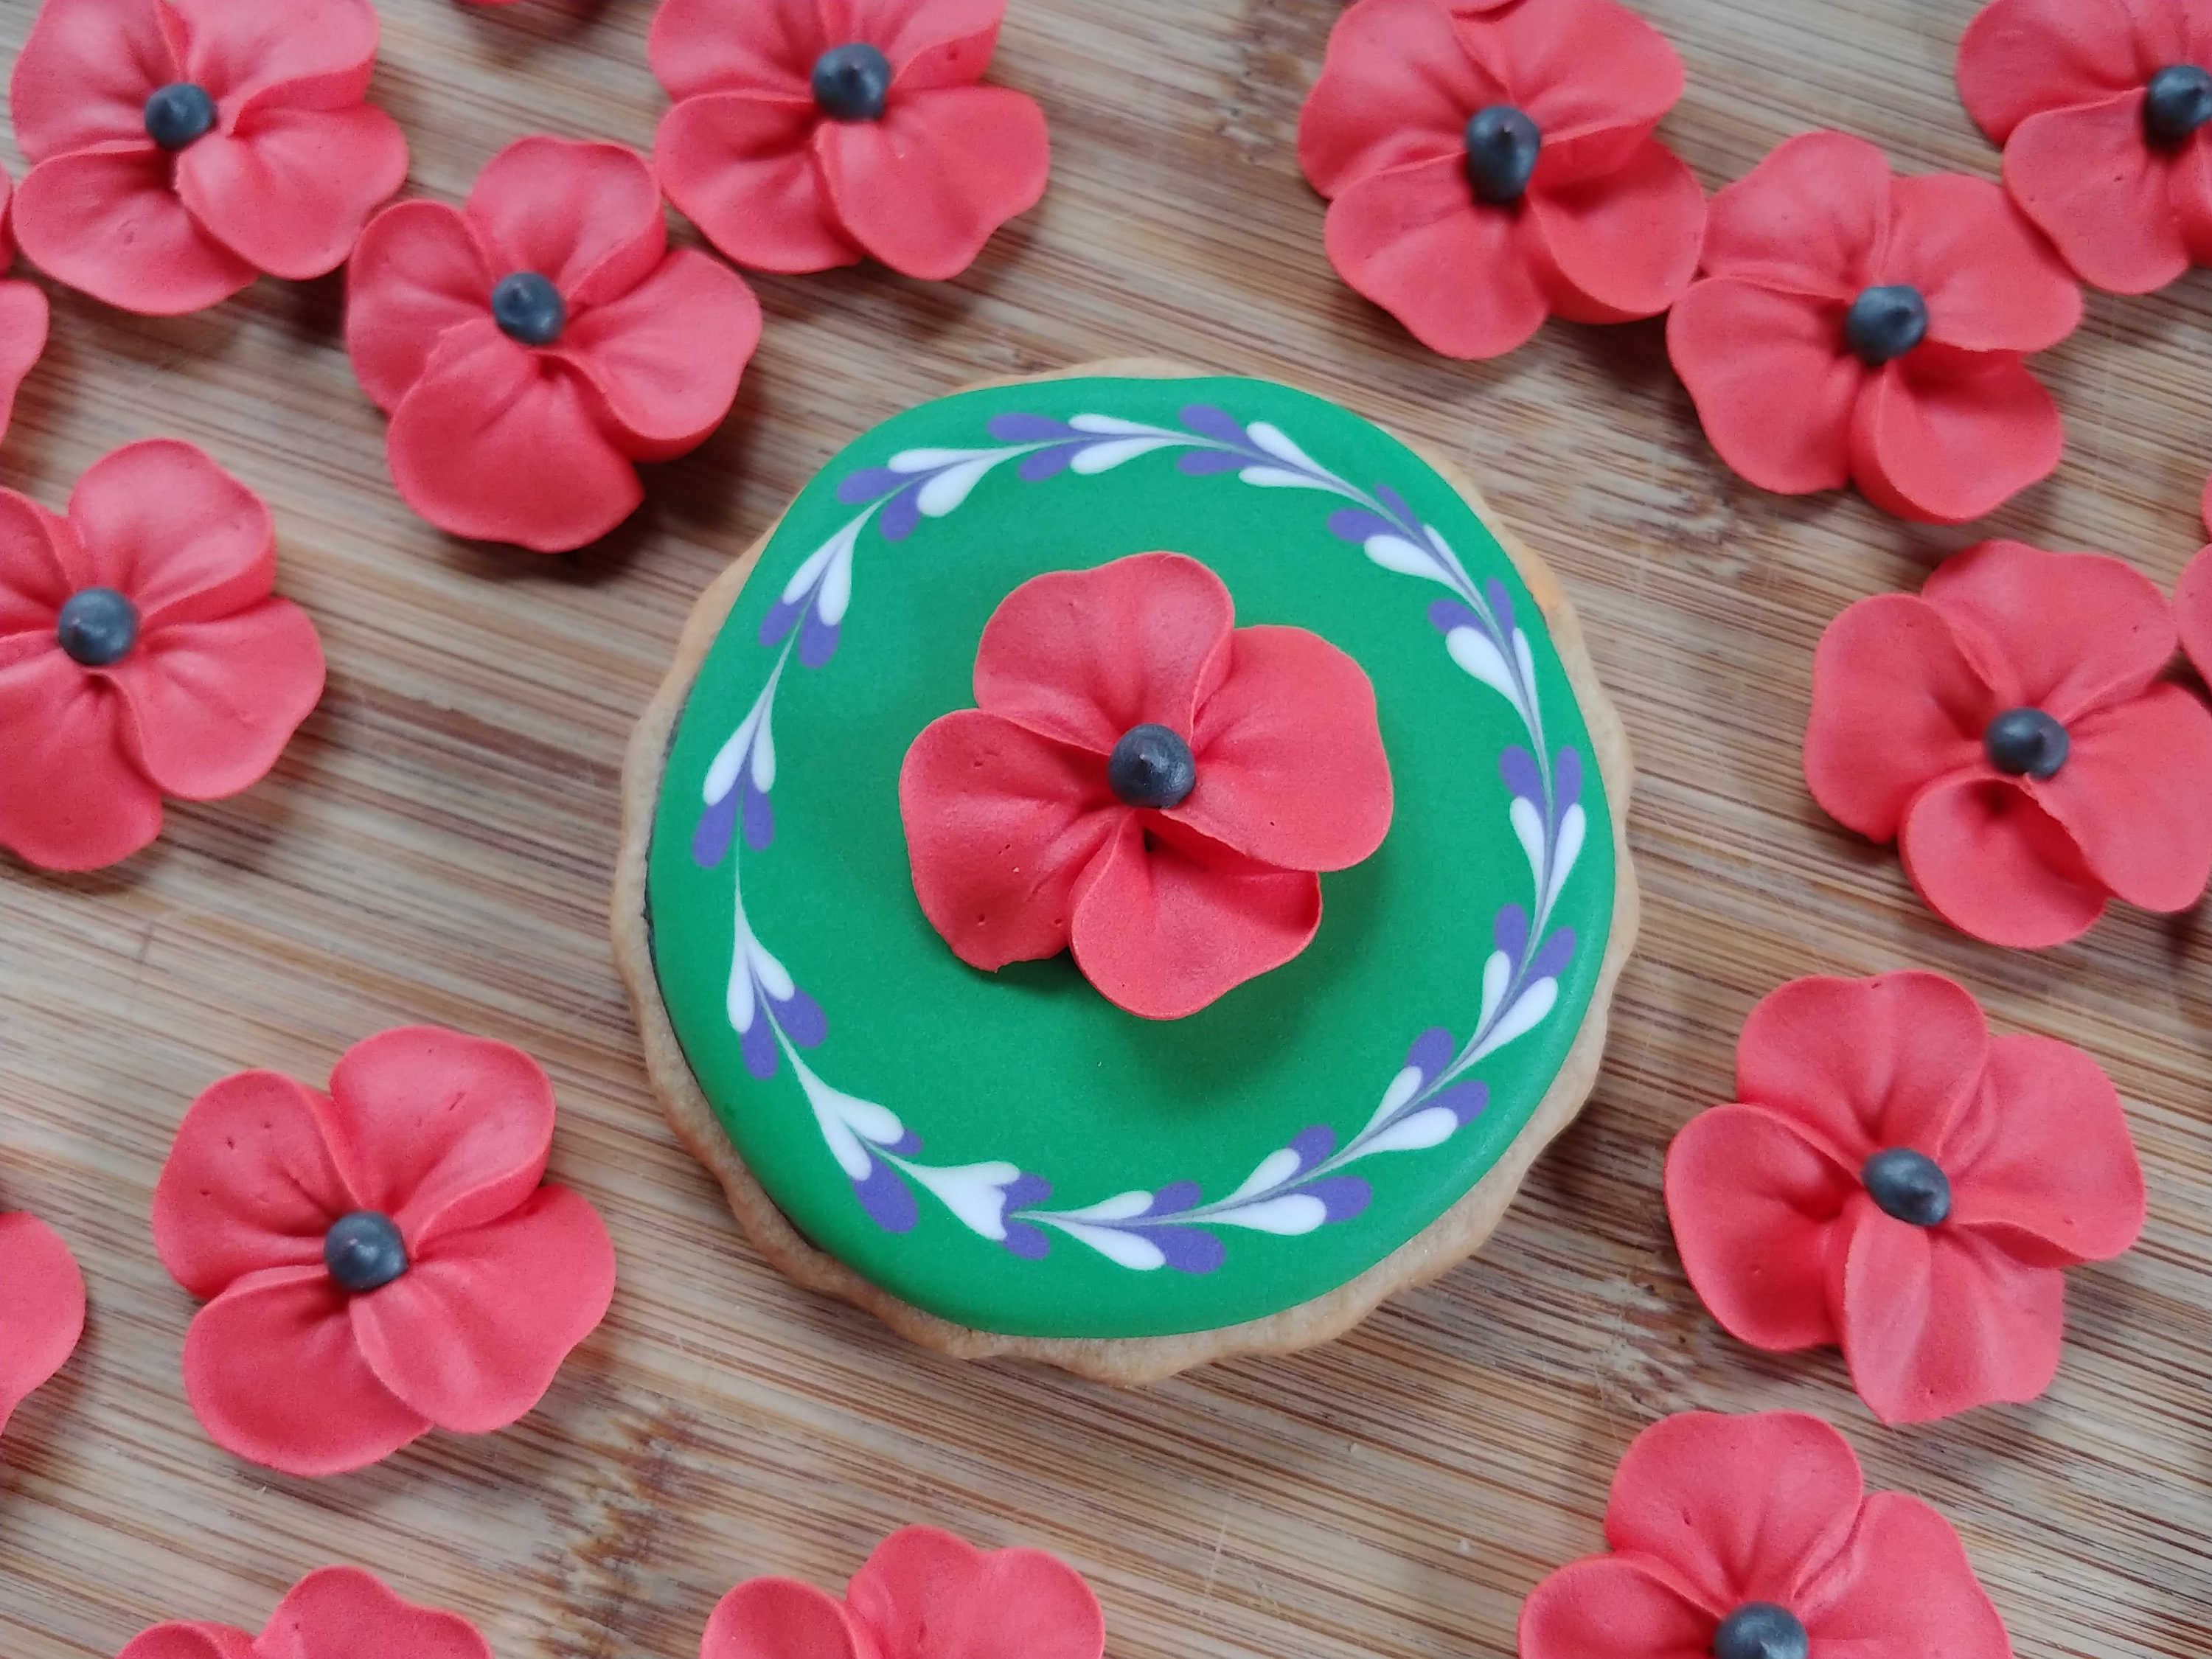 Large Royal Icing Poppies Made To Order Edible Handmade